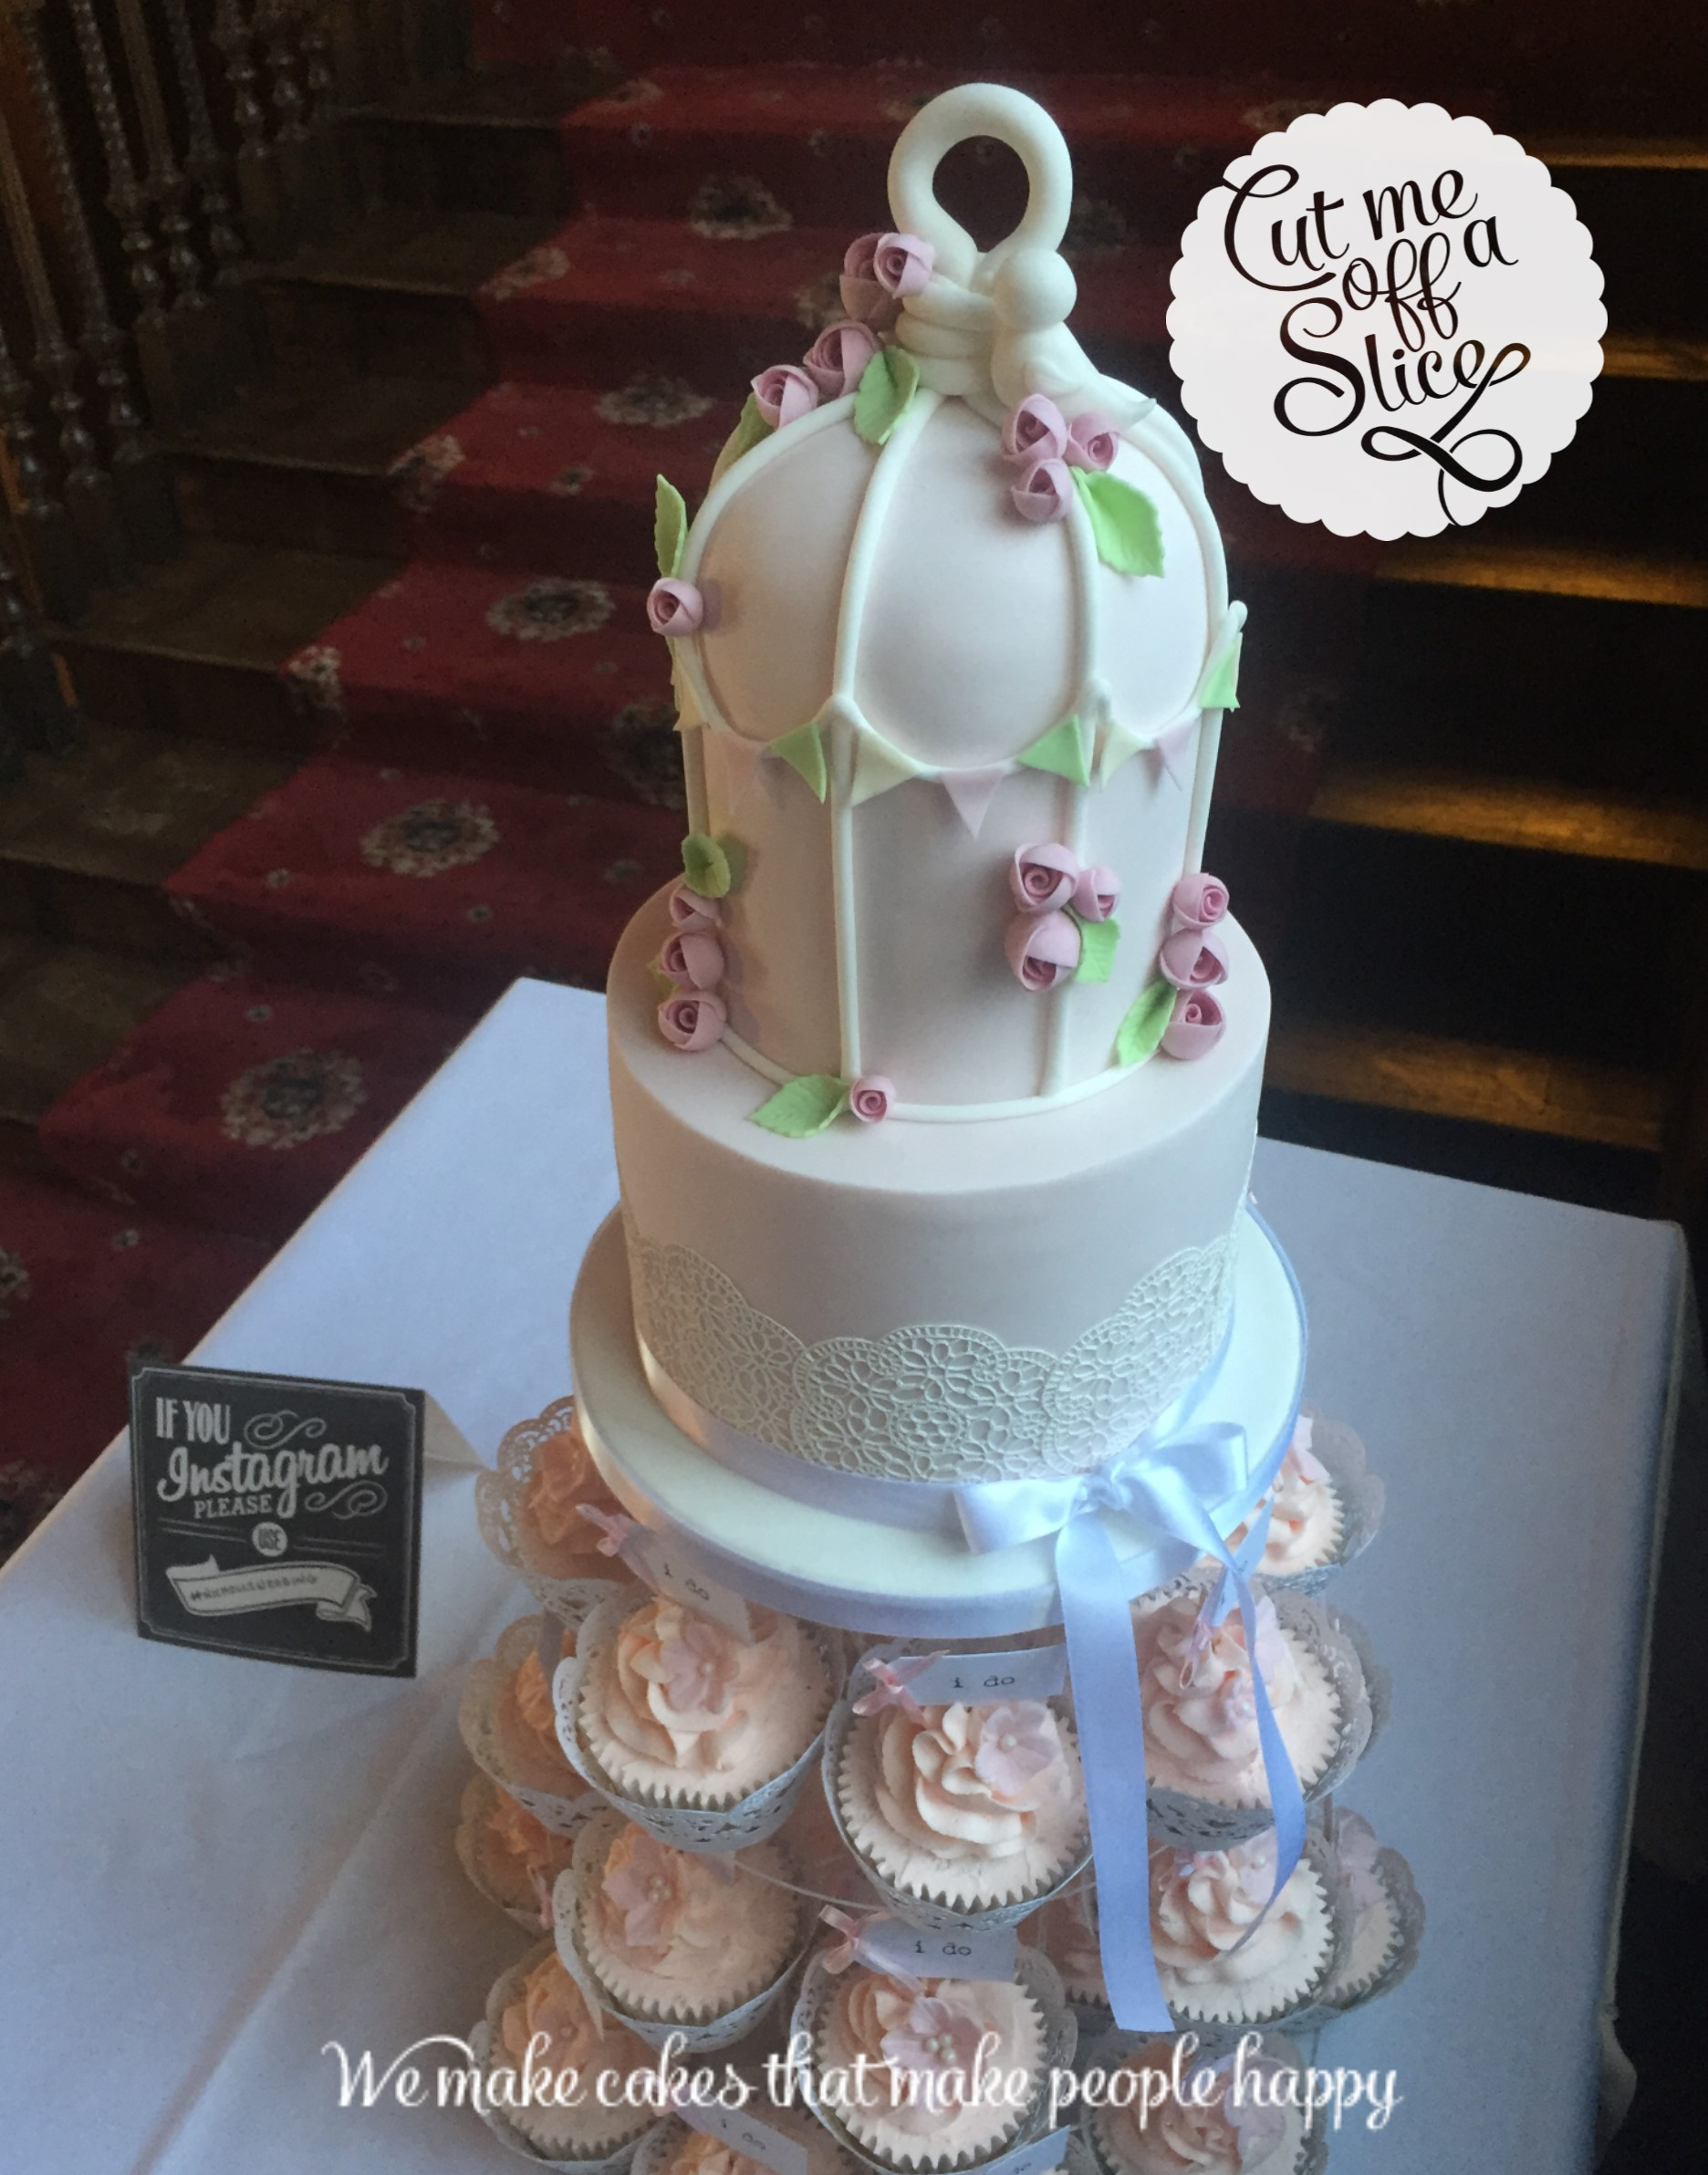 wedding cakes devon cup cakes wedding cakes cut me a slice the cake 24202